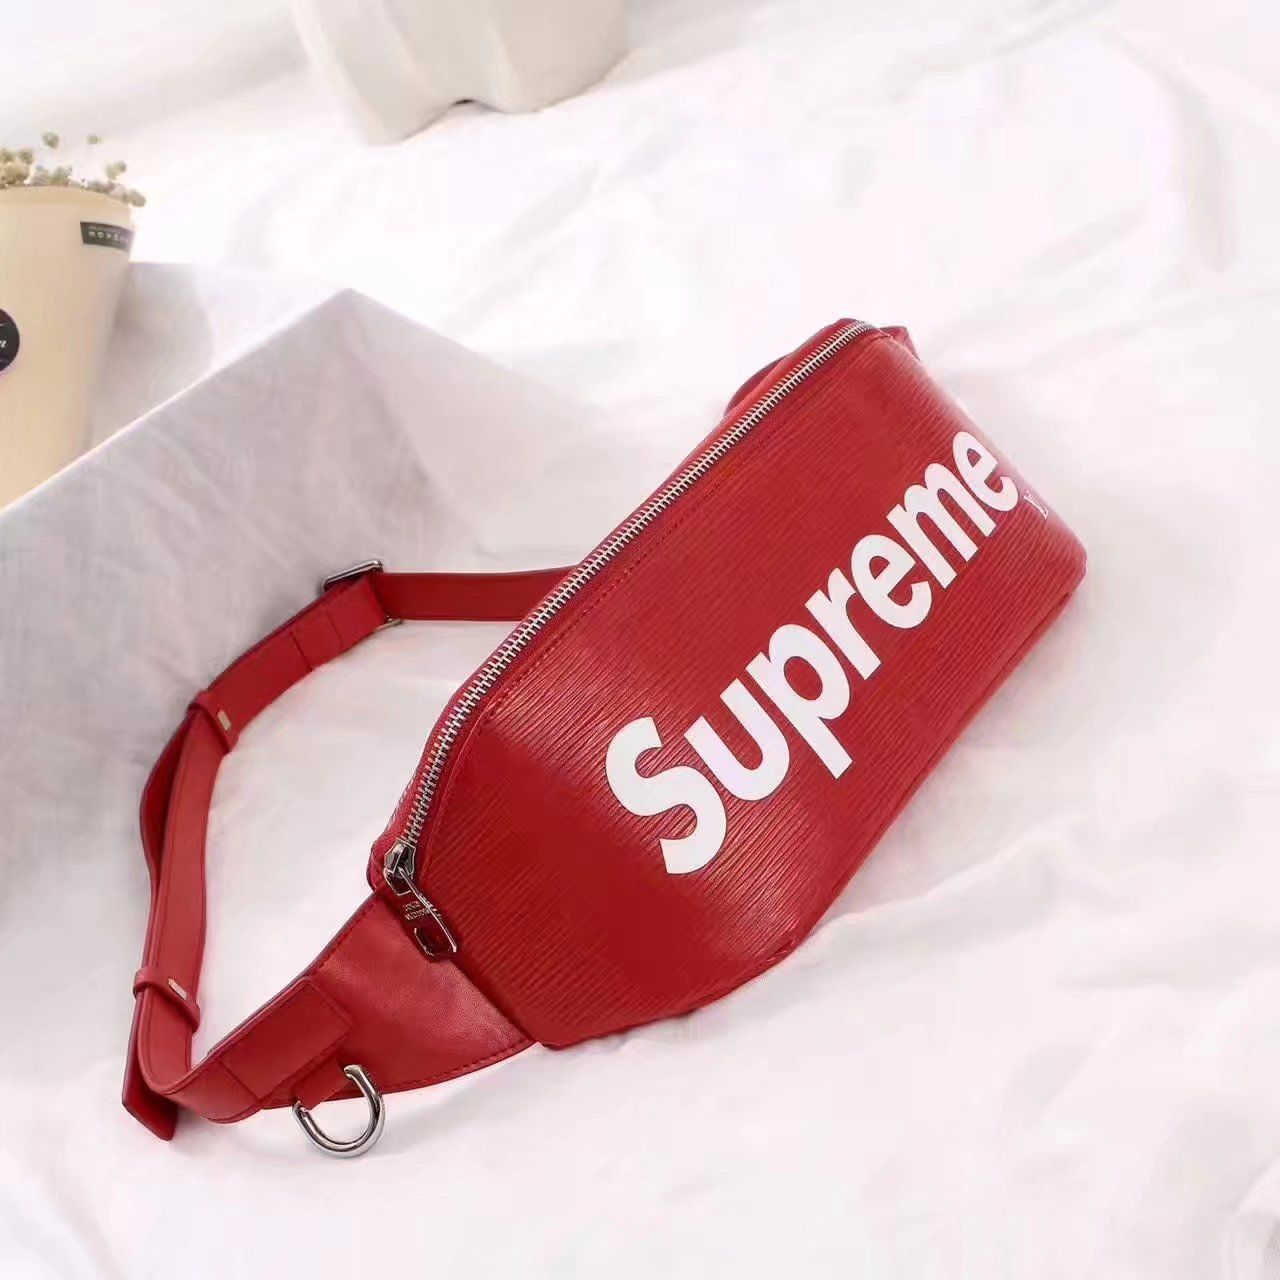 ac36d9860a2c Replica Louis Vuitton x Supreme Bum bag Epi Red ID 31411